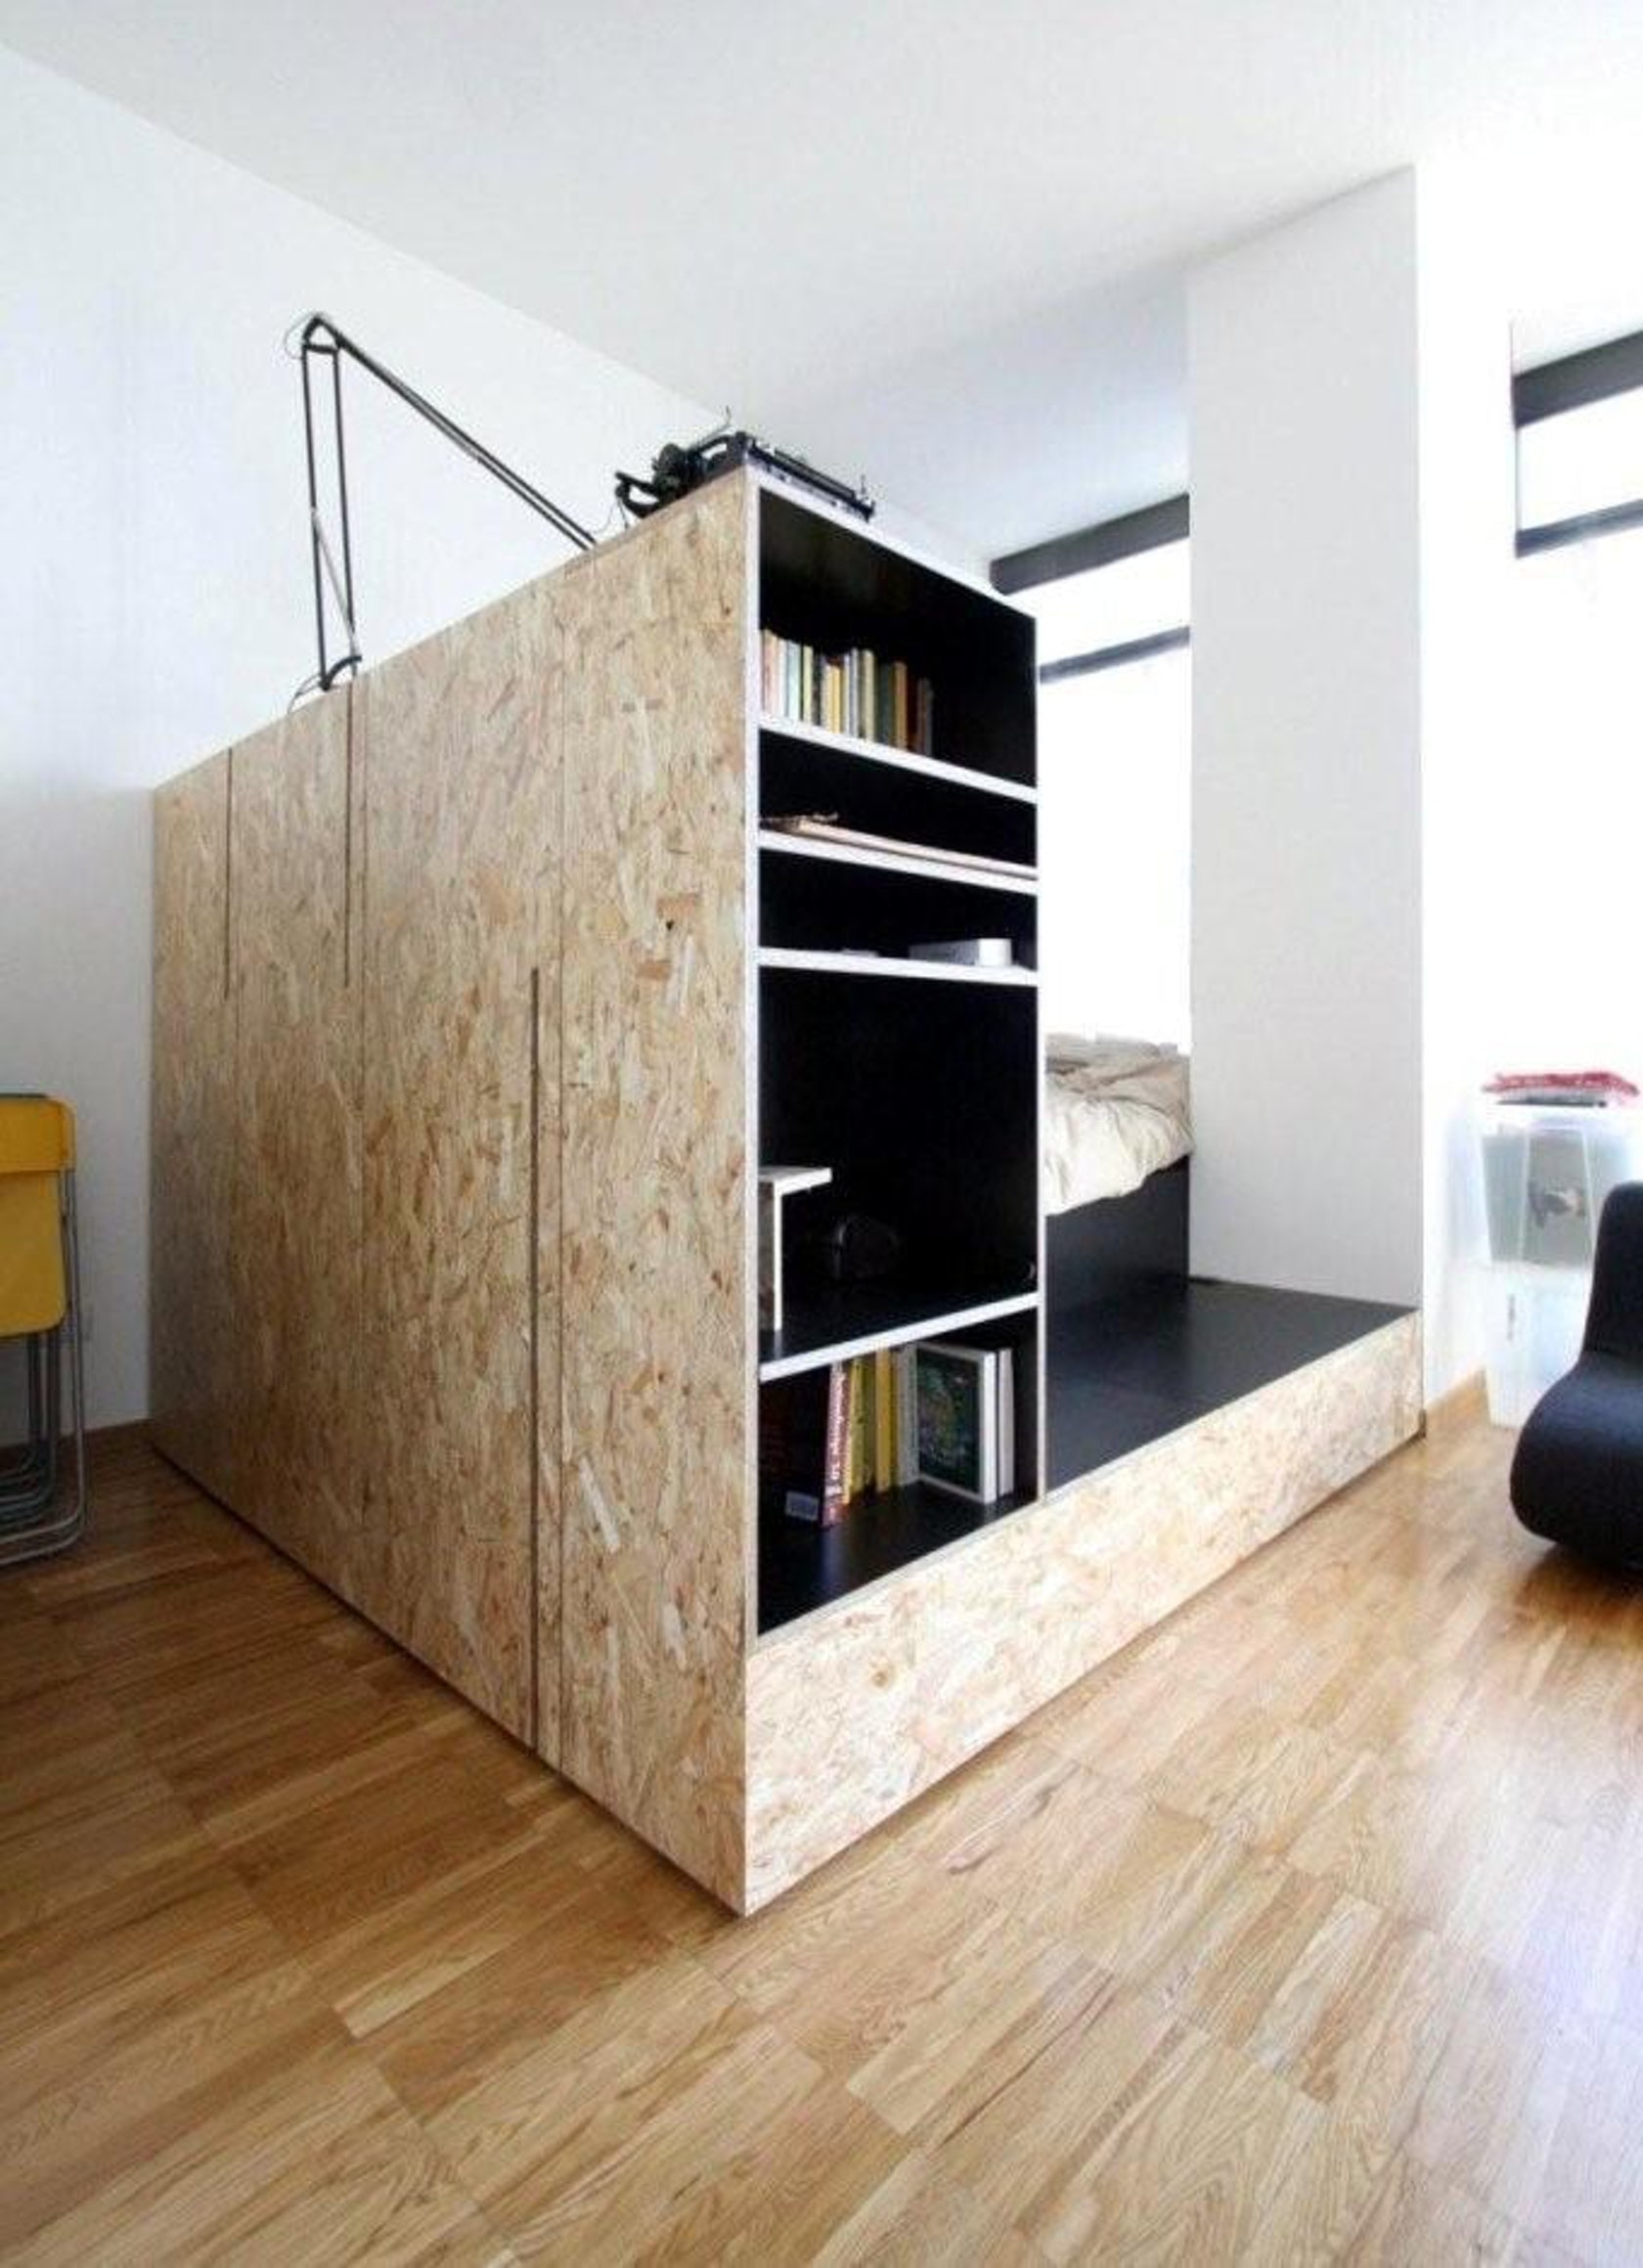 Charming Bed With Shelves Around It